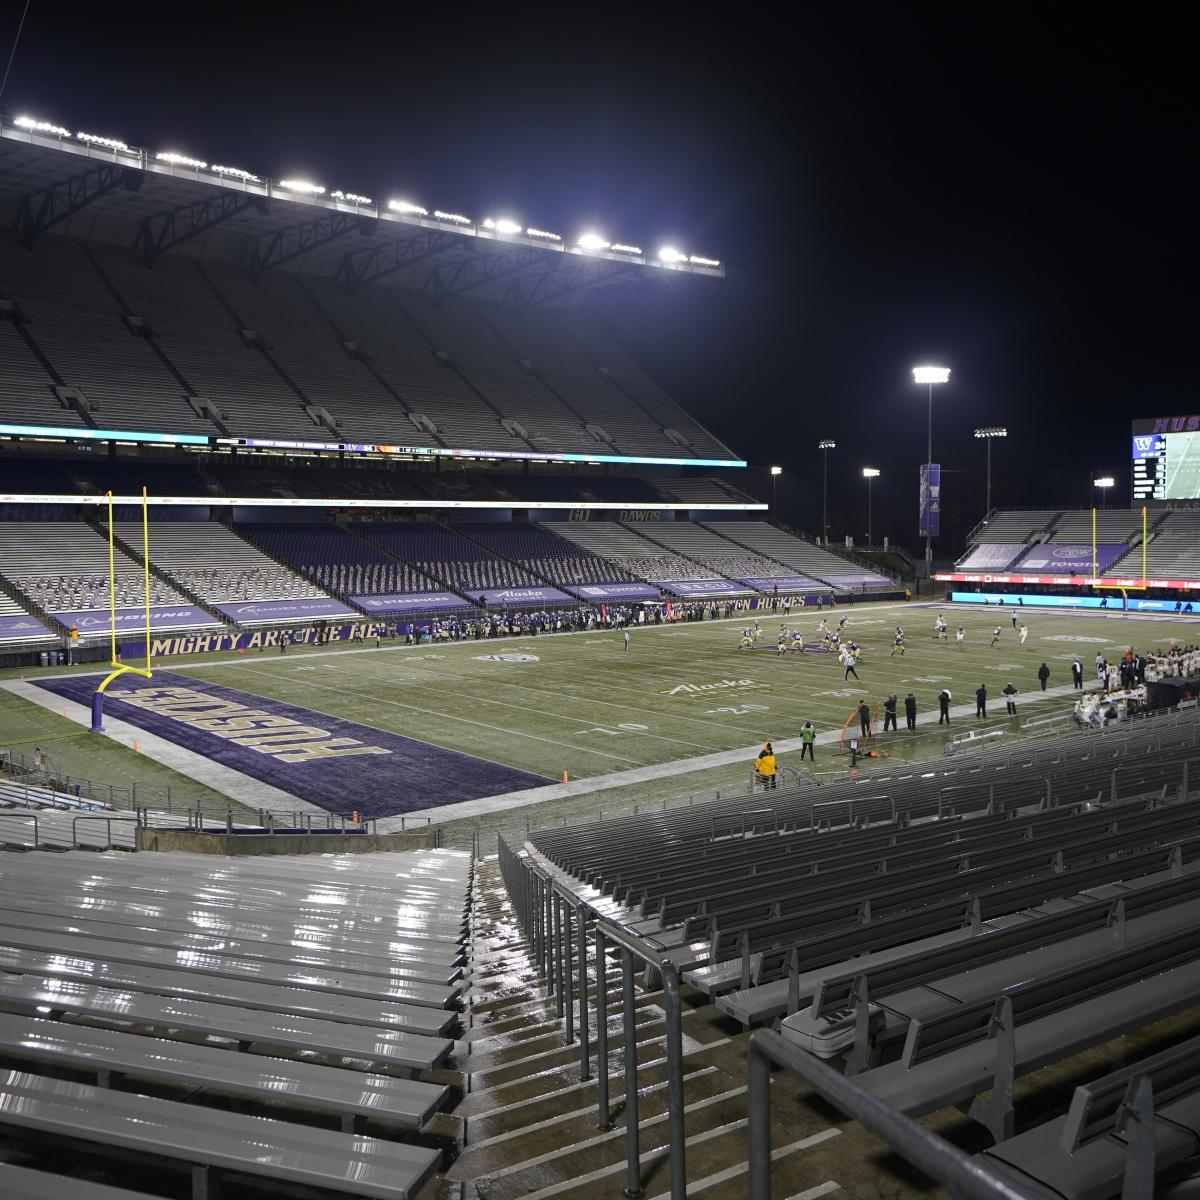 Washington Won't Pursue Bowl Game Due to Ongoing COVID-19 Outbreak